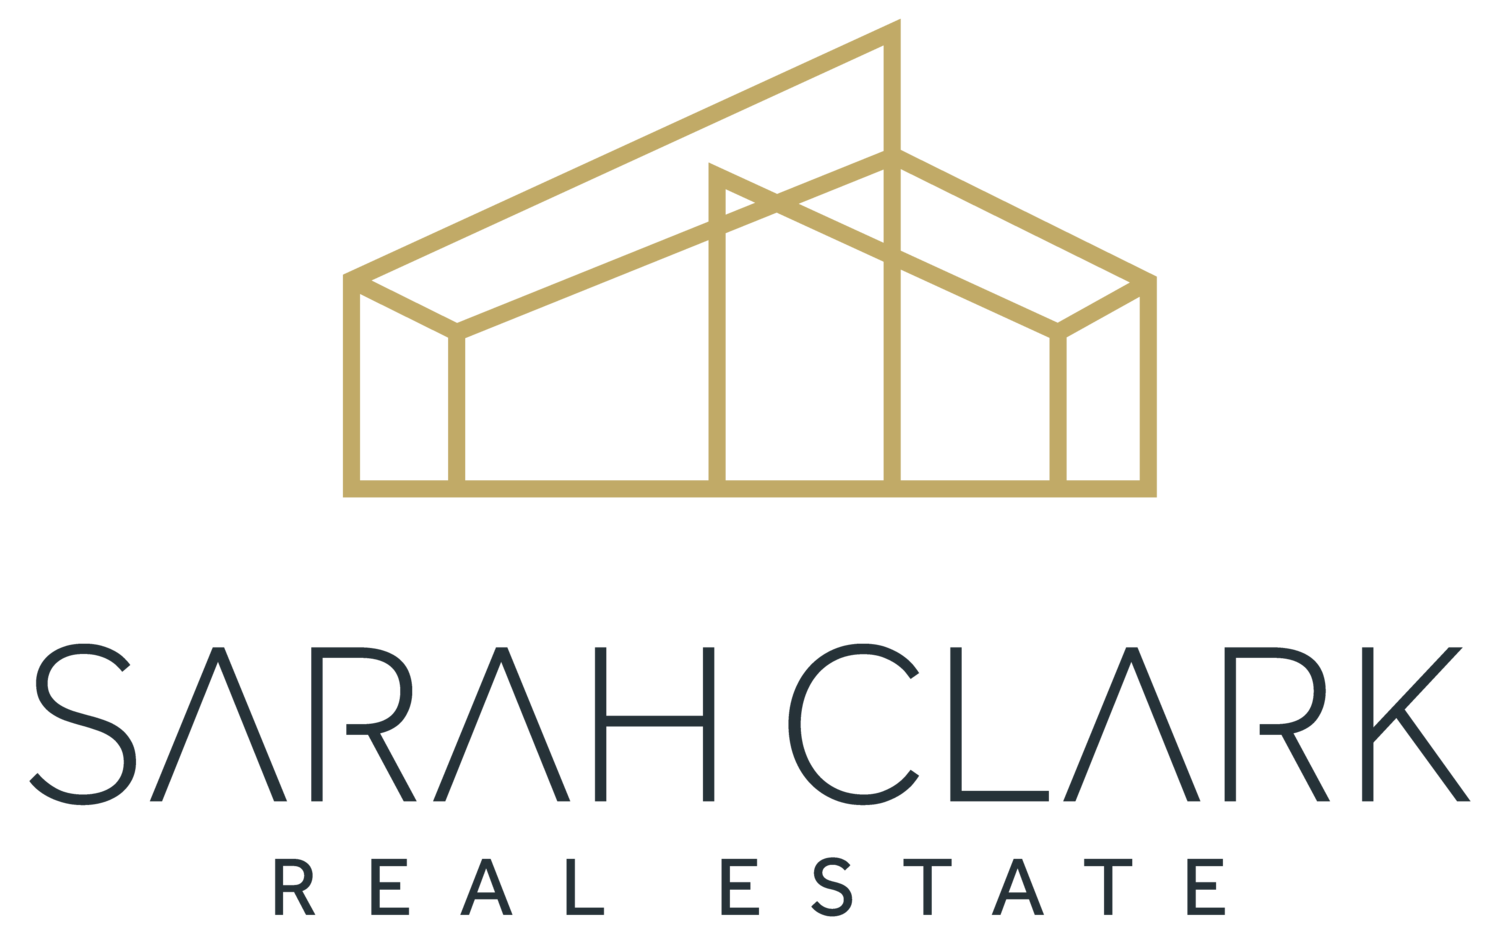 Buying sarah clark meet sarah services buying selling investing relocating properties ccuart Images